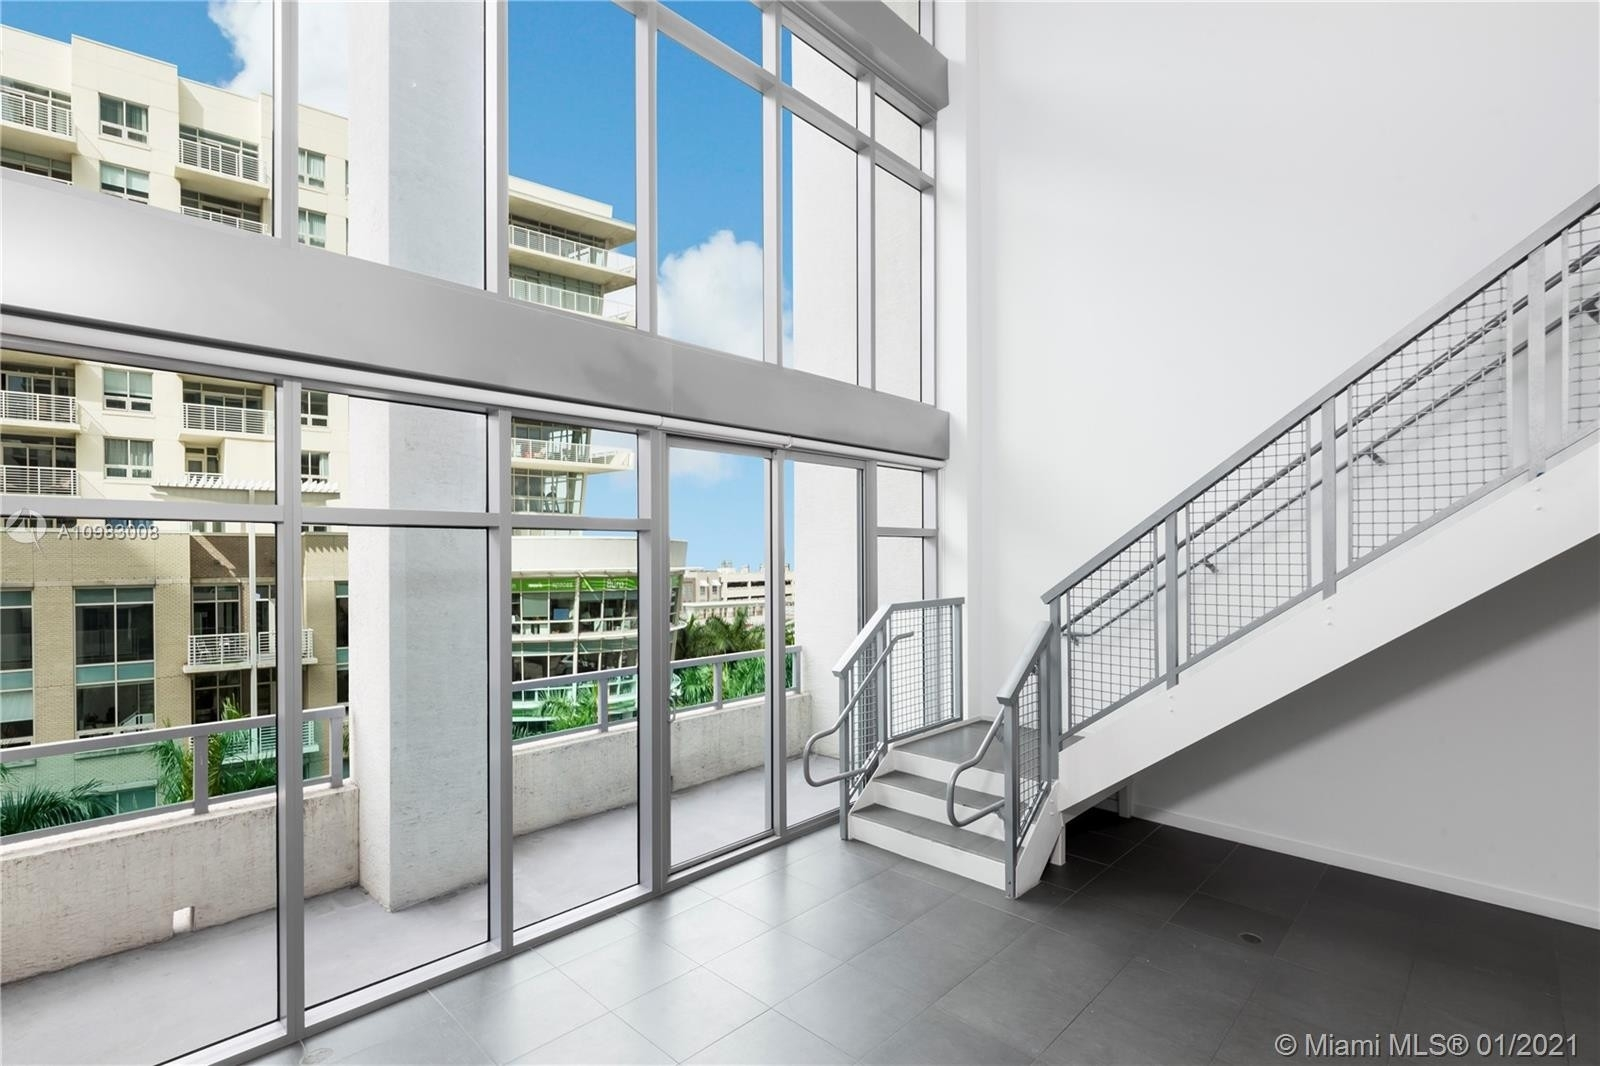 Property at 3301 NE 1st Ave , M0502 Shops at Midtown Miami, Miami, FL 33137